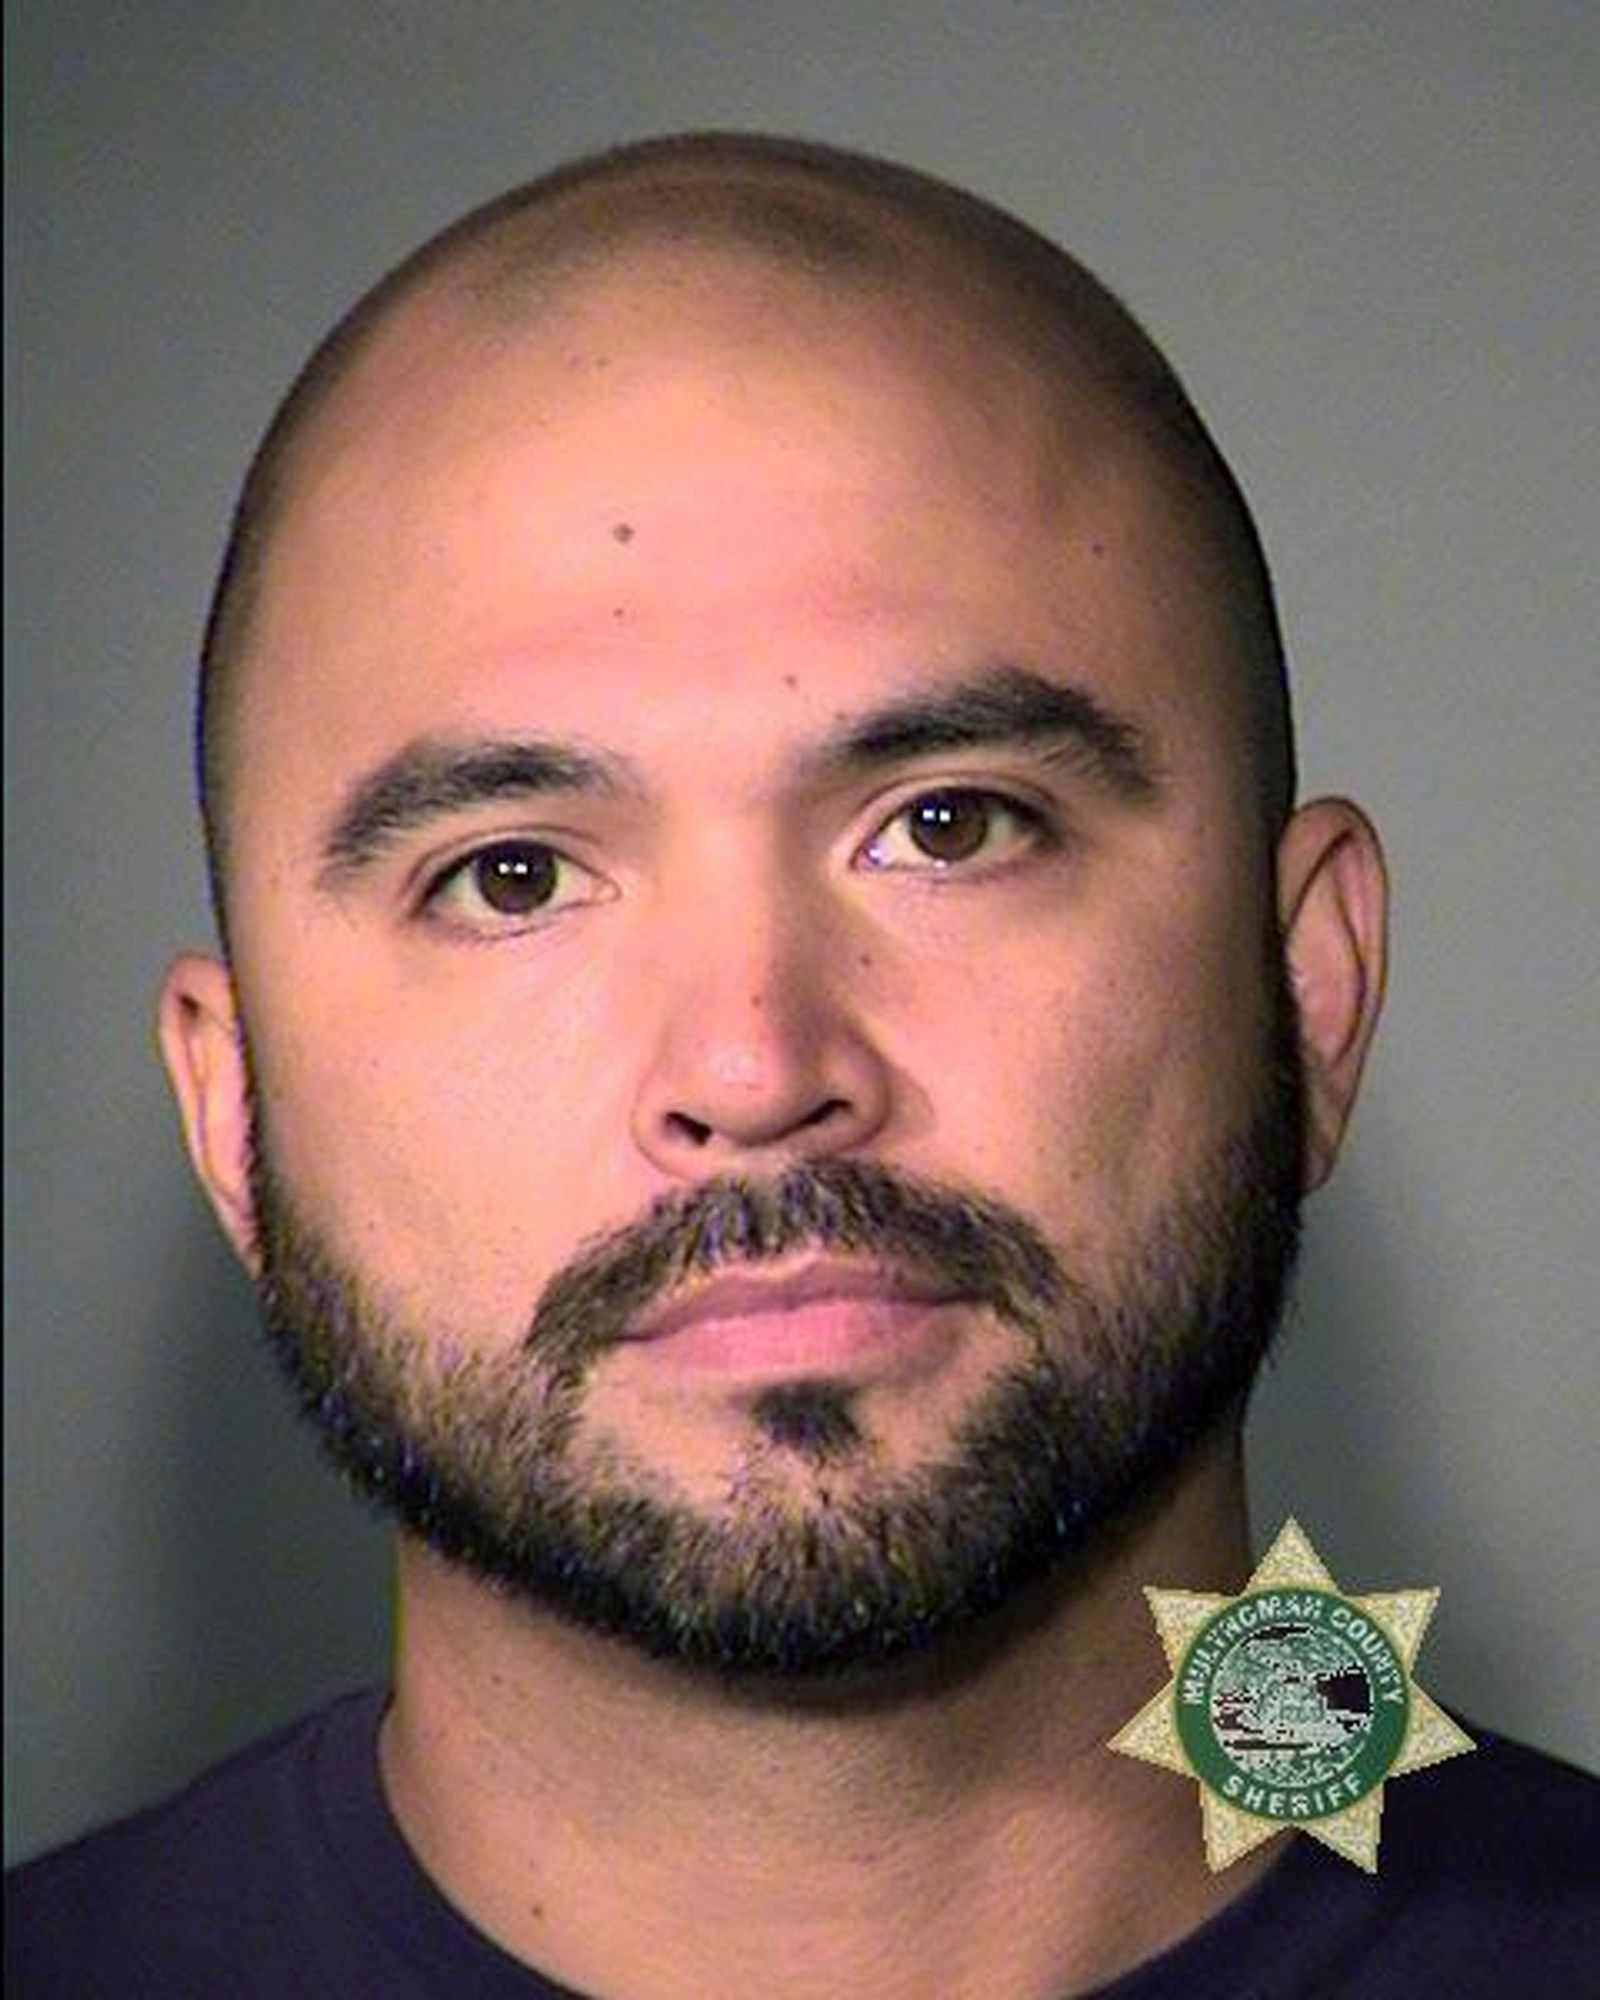 "This booking photo provided by the Multnomah County Sheriff's Office shows Patriot Prayer leader Joey Gibson on Friday, Aug. 16, 2019. Authorities arrested Gibson, the leader of the right-wing group, on the eve of a far-right rally that's expected to draw people from around the U.S. to Portland, Ore., on Saturday, Aug. 17 prompting Gibson to urge his followers to ""show up one hundred-fold"" in response. (Multnomah County Sheriff's Office via AP)"